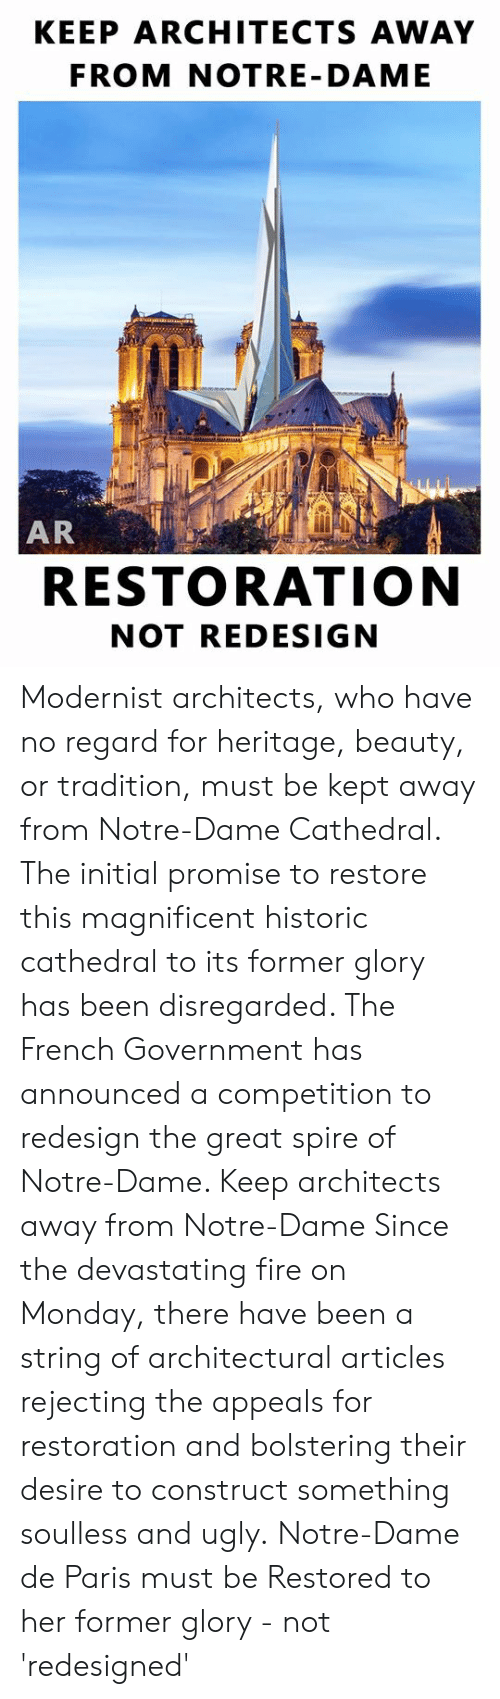 initial: KEEP ARCHITECTS AWAY  FROM NOTRE- DAME  AR  RESTORATION  NOT REDESIGN Modernist architects, who have no regard for heritage, beauty, or tradition, must be kept away from Notre-Dame Cathedral.  The initial promise to restore this magnificent historic cathedral to its former glory has been disregarded. The French Government has announced a competition to redesign the great spire of Notre-Dame.   Keep architects away from Notre-Dame  Since the devastating fire on Monday, there have been a string of architectural articles rejecting the appeals for restoration and bolstering their desire to construct something soulless and ugly.  Notre-Dame de Paris must be Restored to her former glory - not 'redesigned'